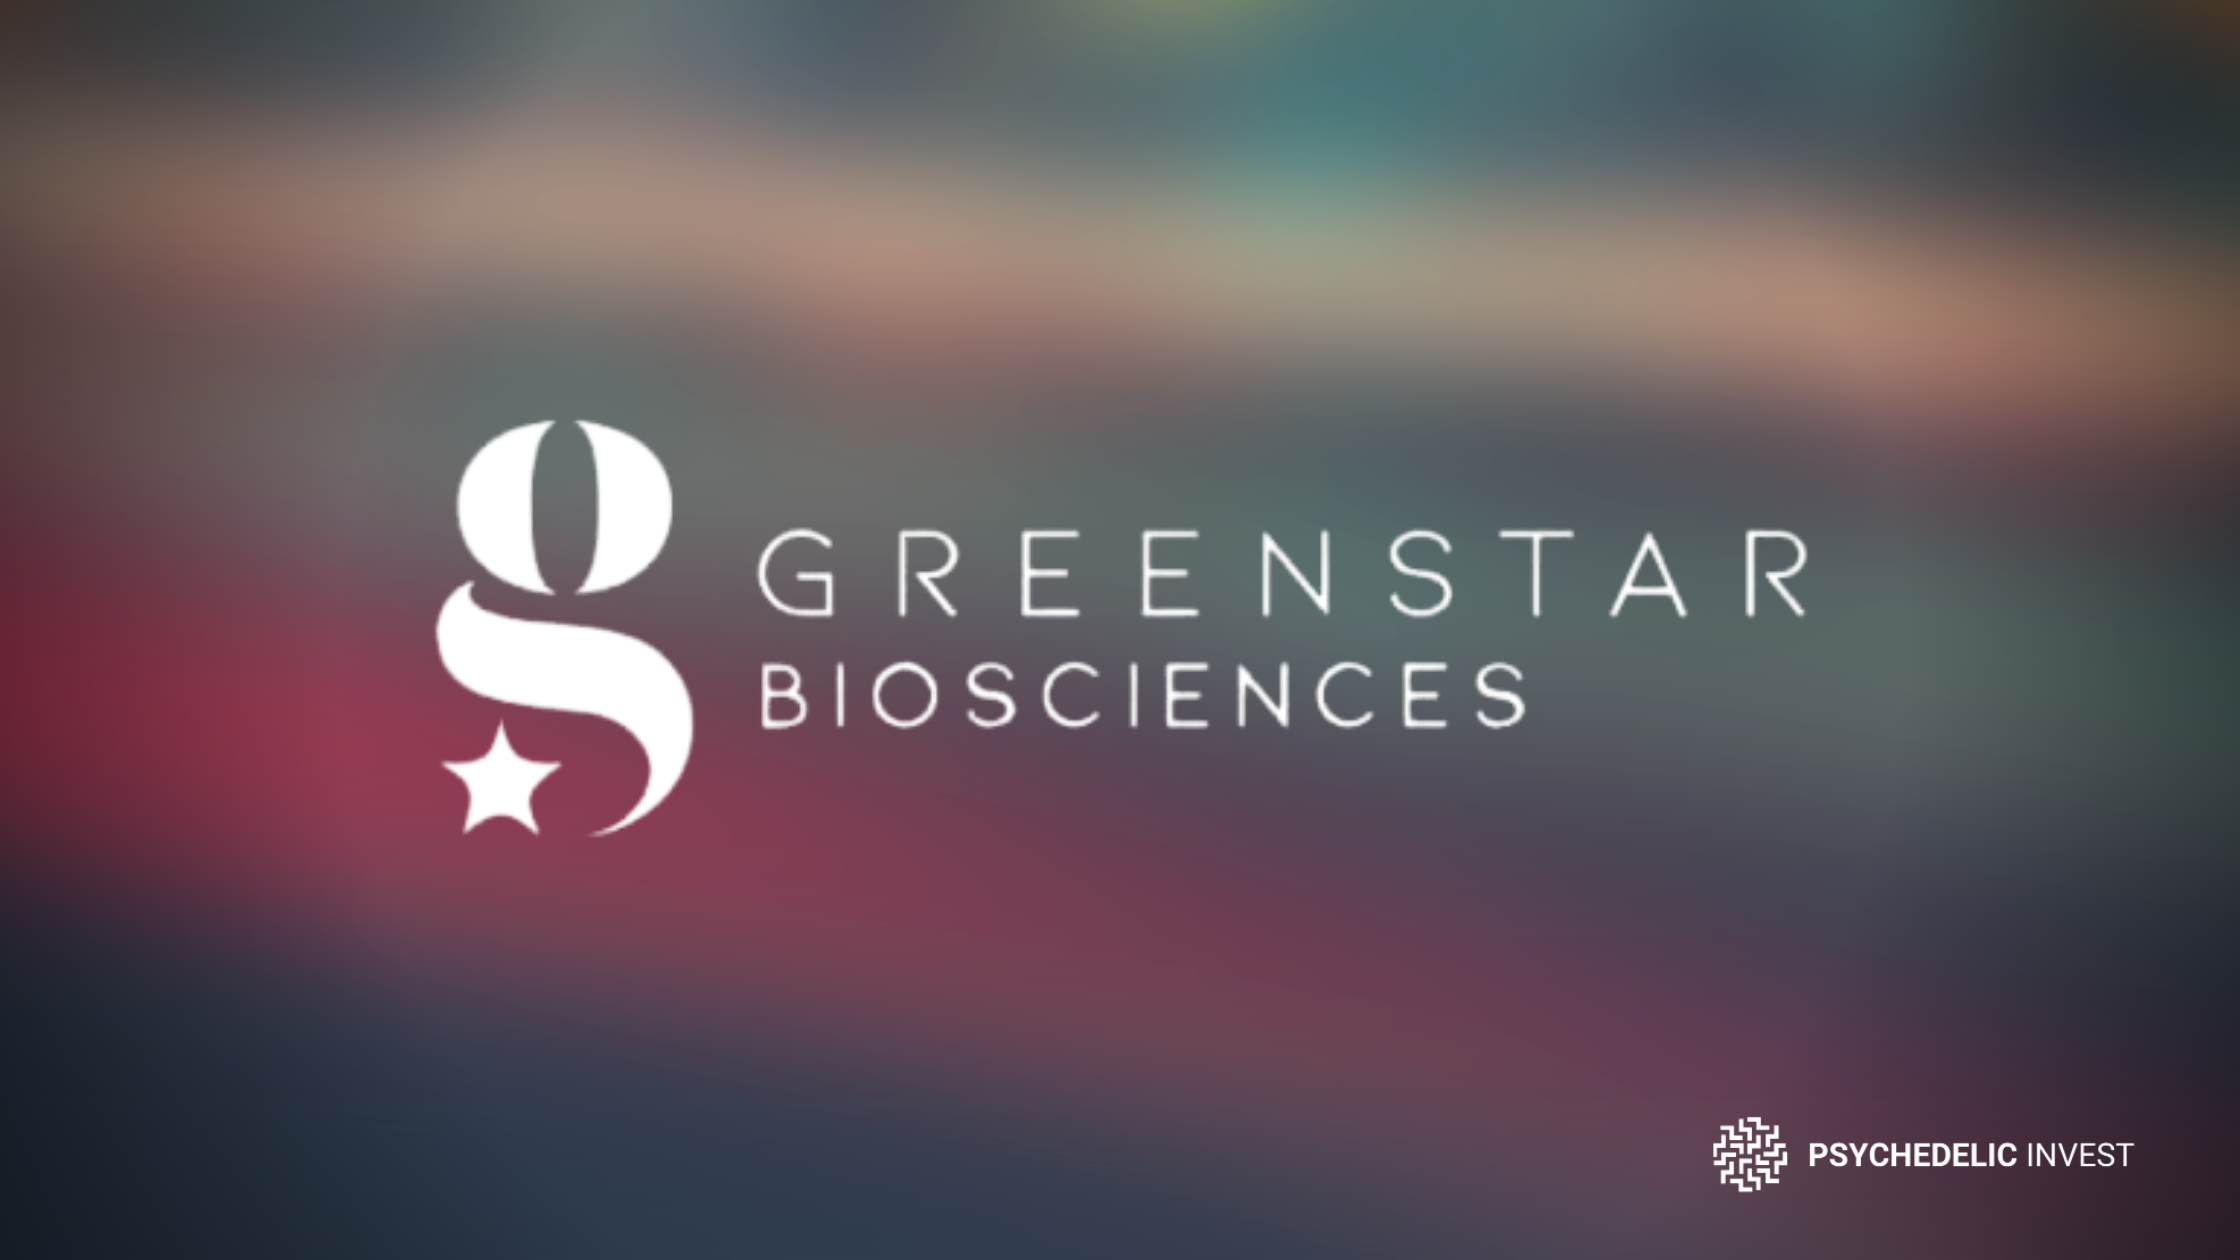 greenstar biosciences